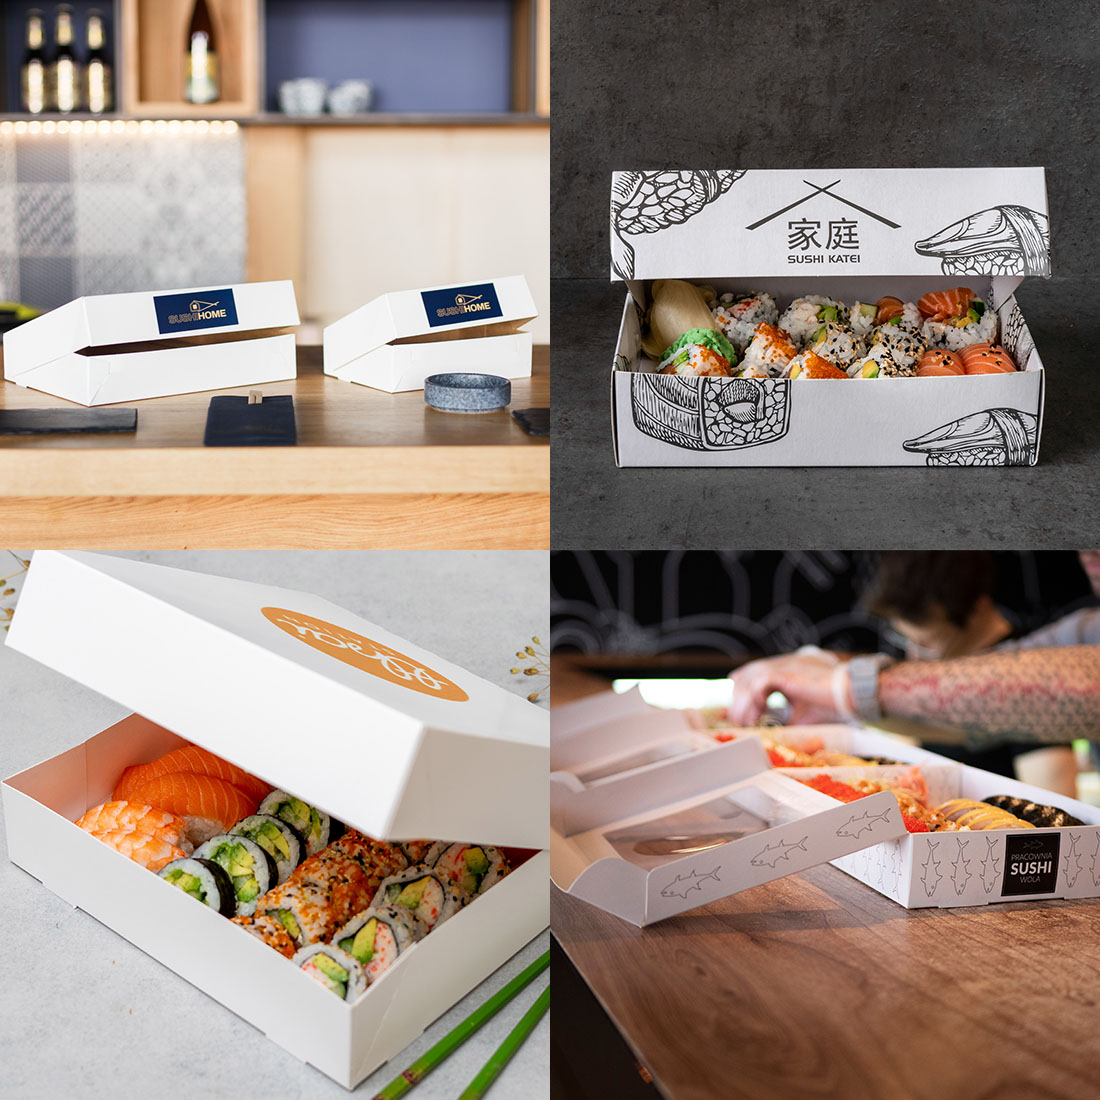 Many restaurants are already using paper packaging for sushi